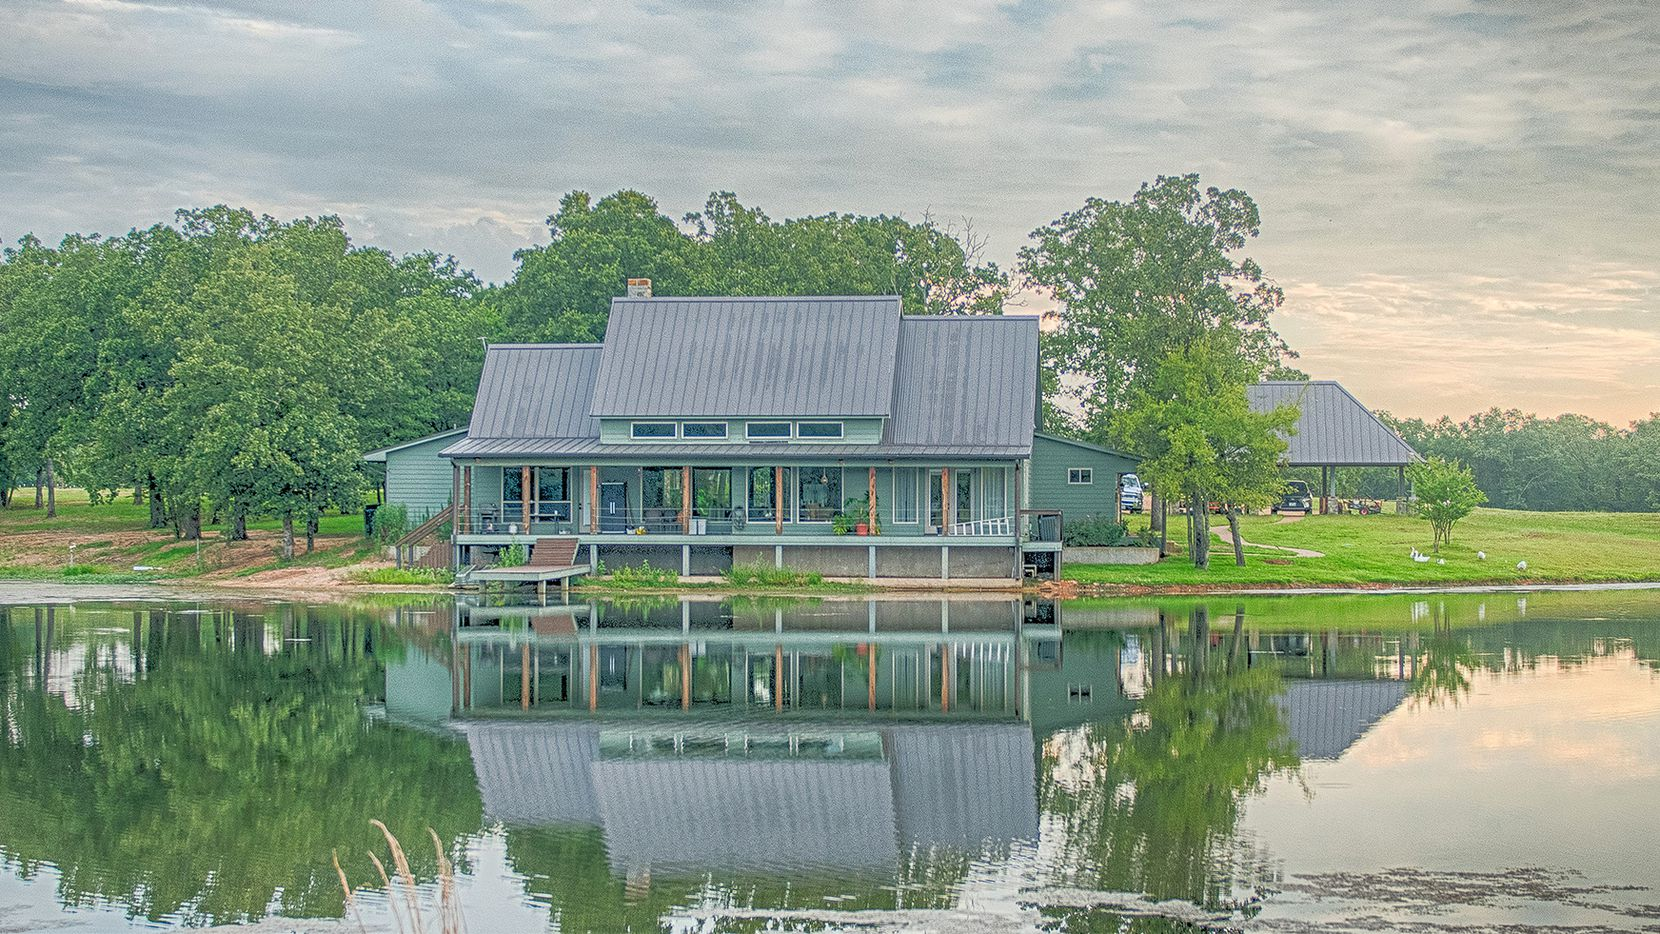 Steve Grant Real Estate is marketing this 156.11-acre property with a main house and lodge in East Texas.